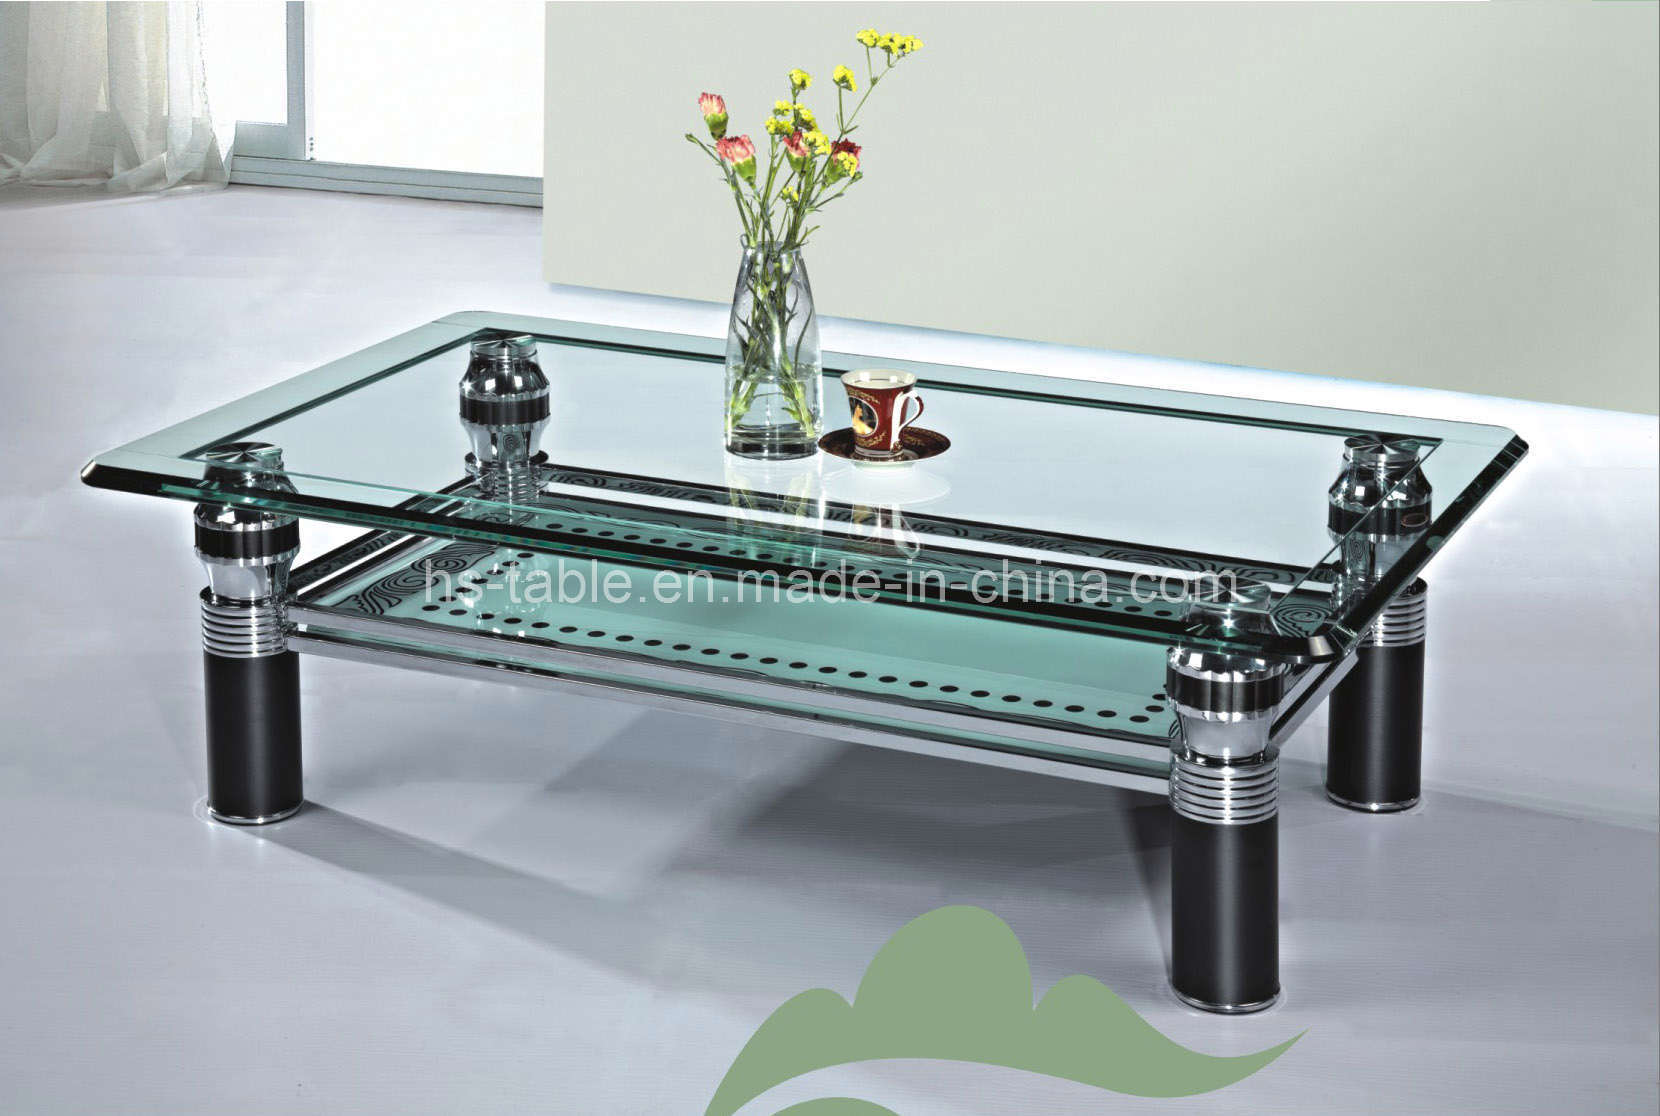 China Glass Furniture Glass Coffee Table 2293 China Glass Coffee Table Glass Tea Table